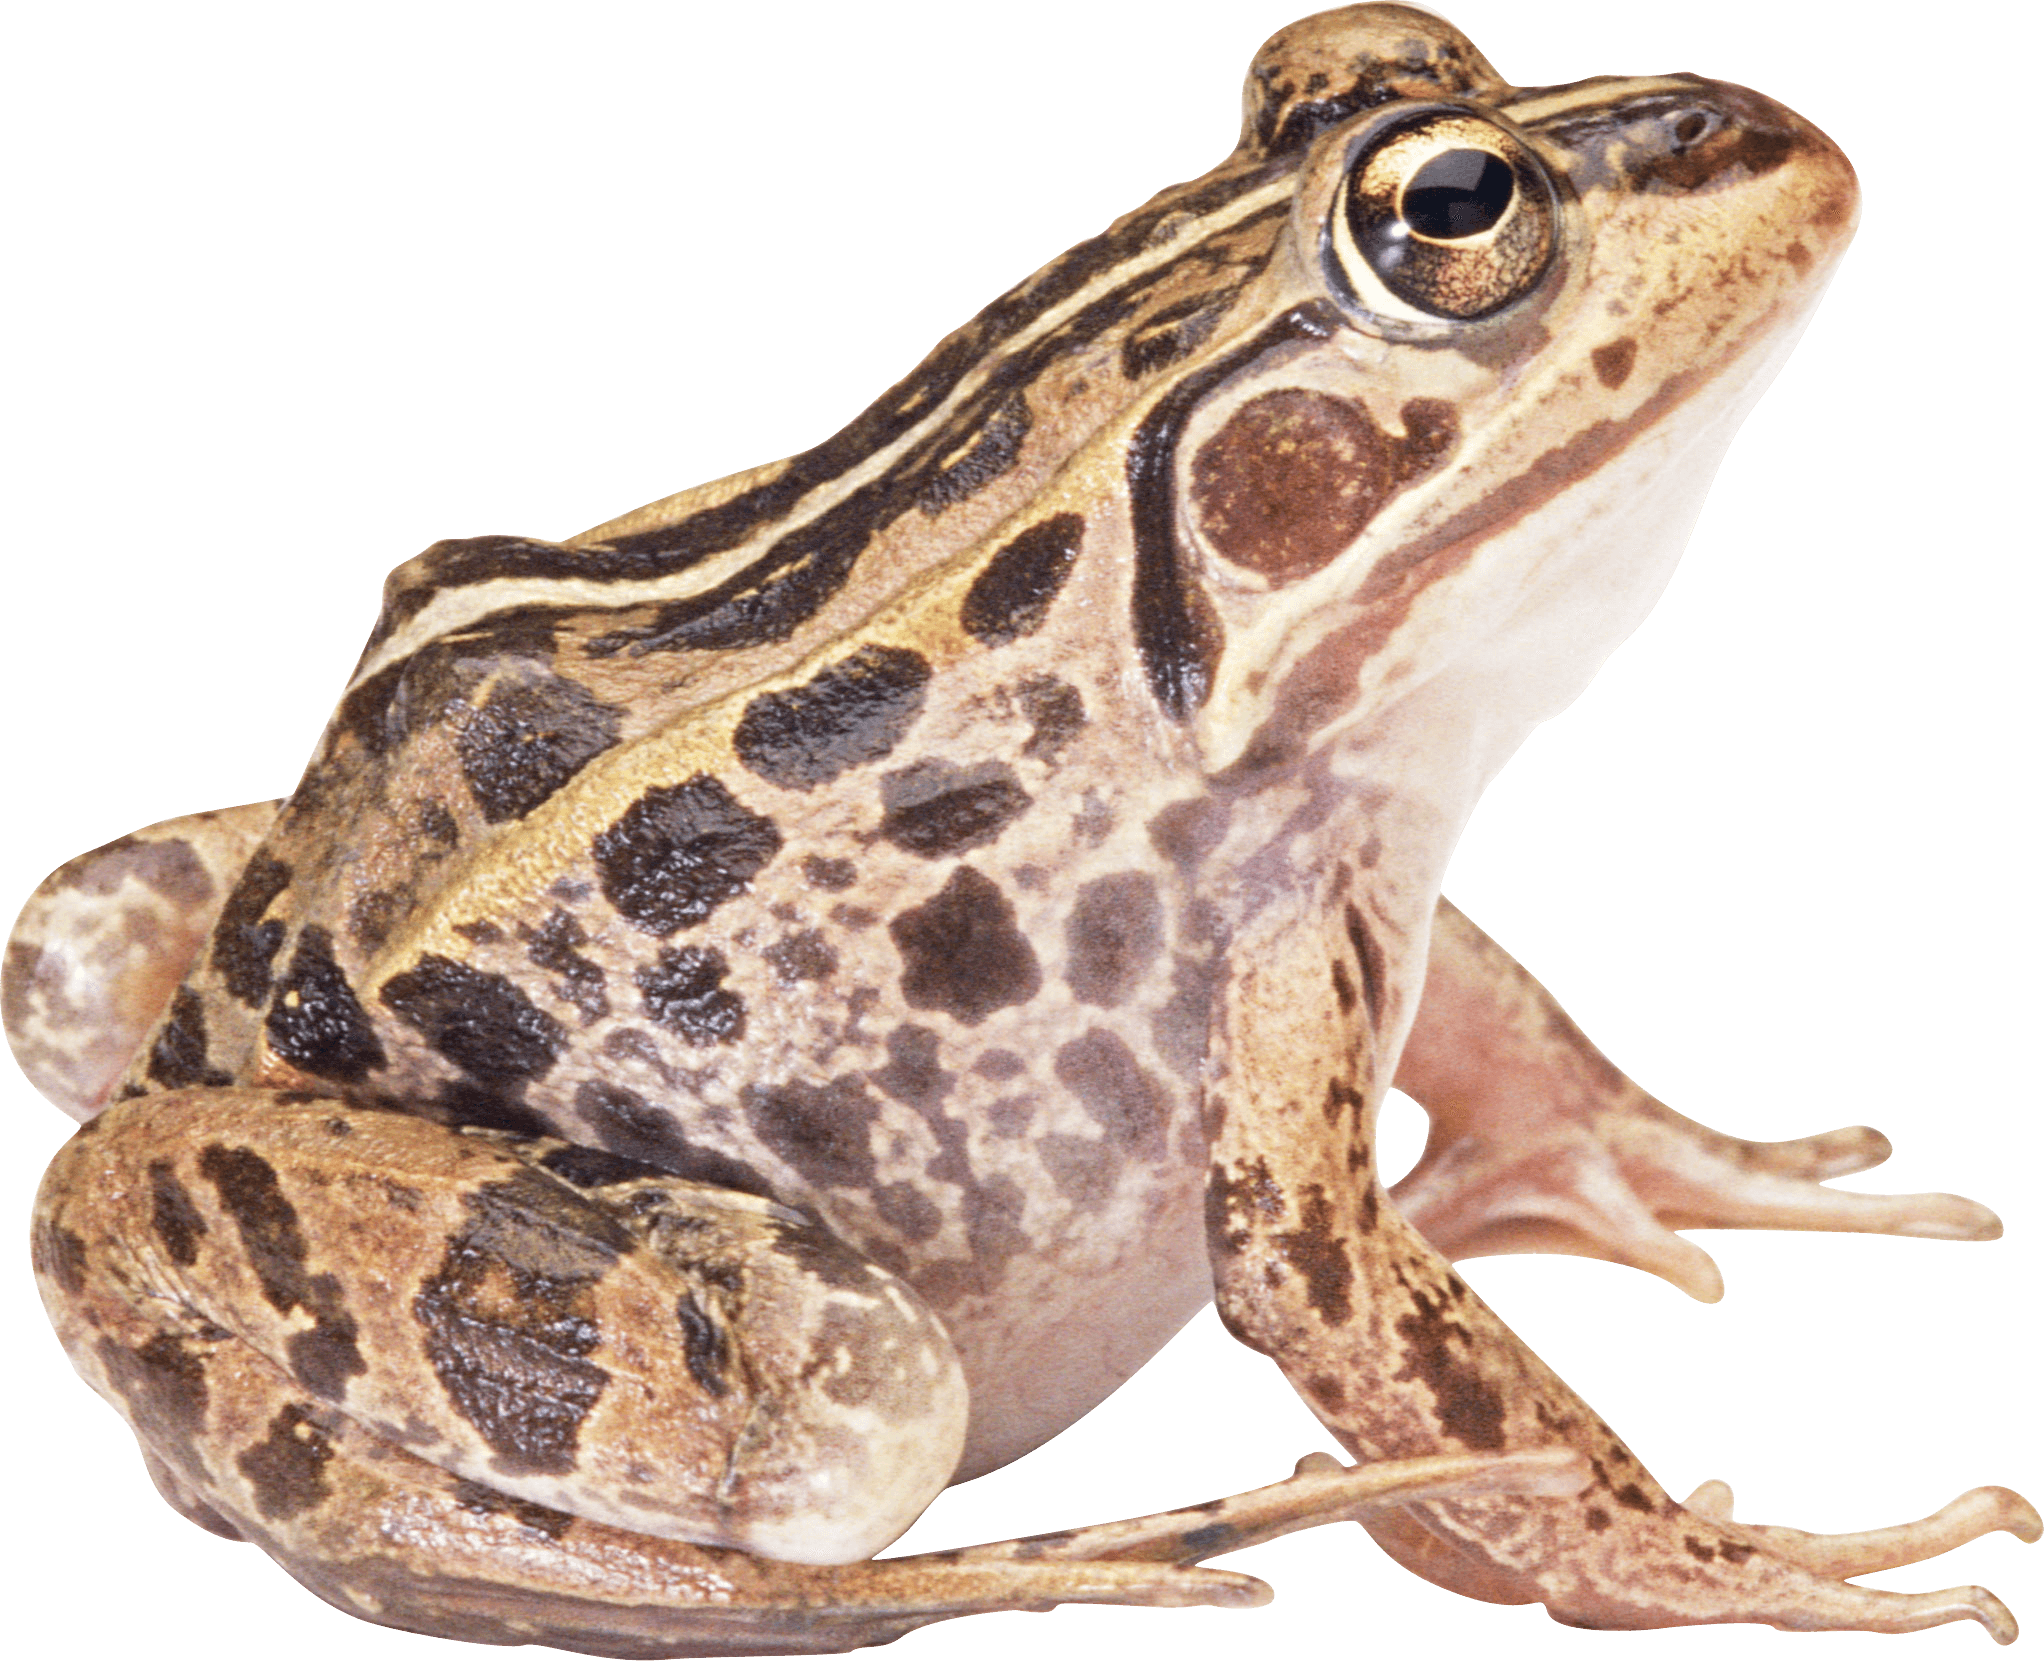 Brown toad png image. Frogs clipart bullfrog